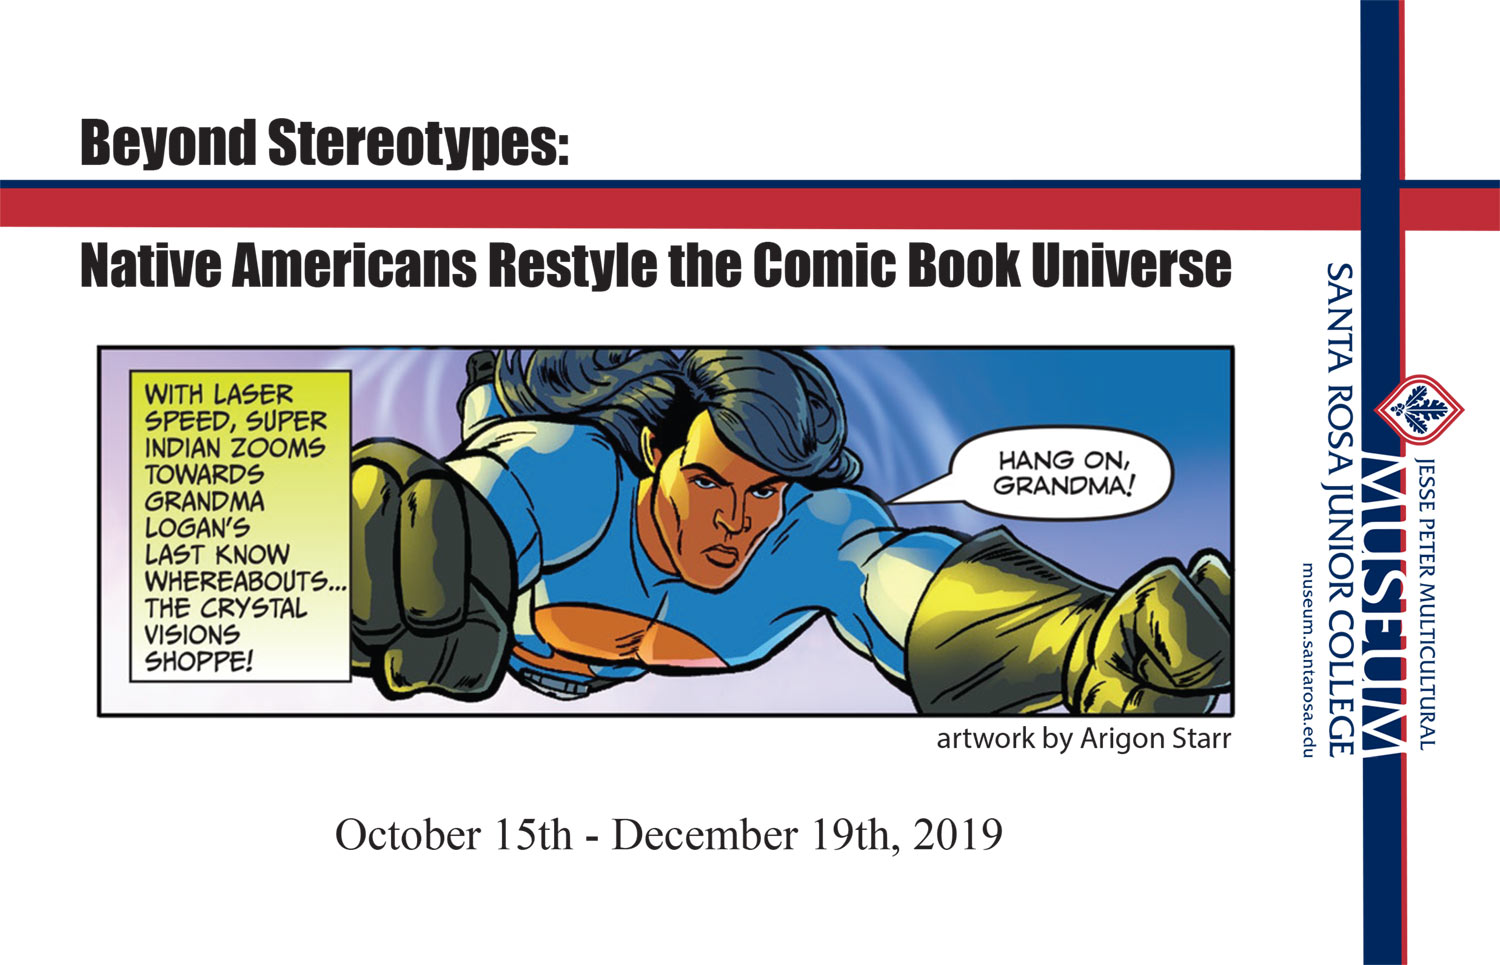 Beyond Stereotypes - Native Americans Restyle the Comic Book Universe